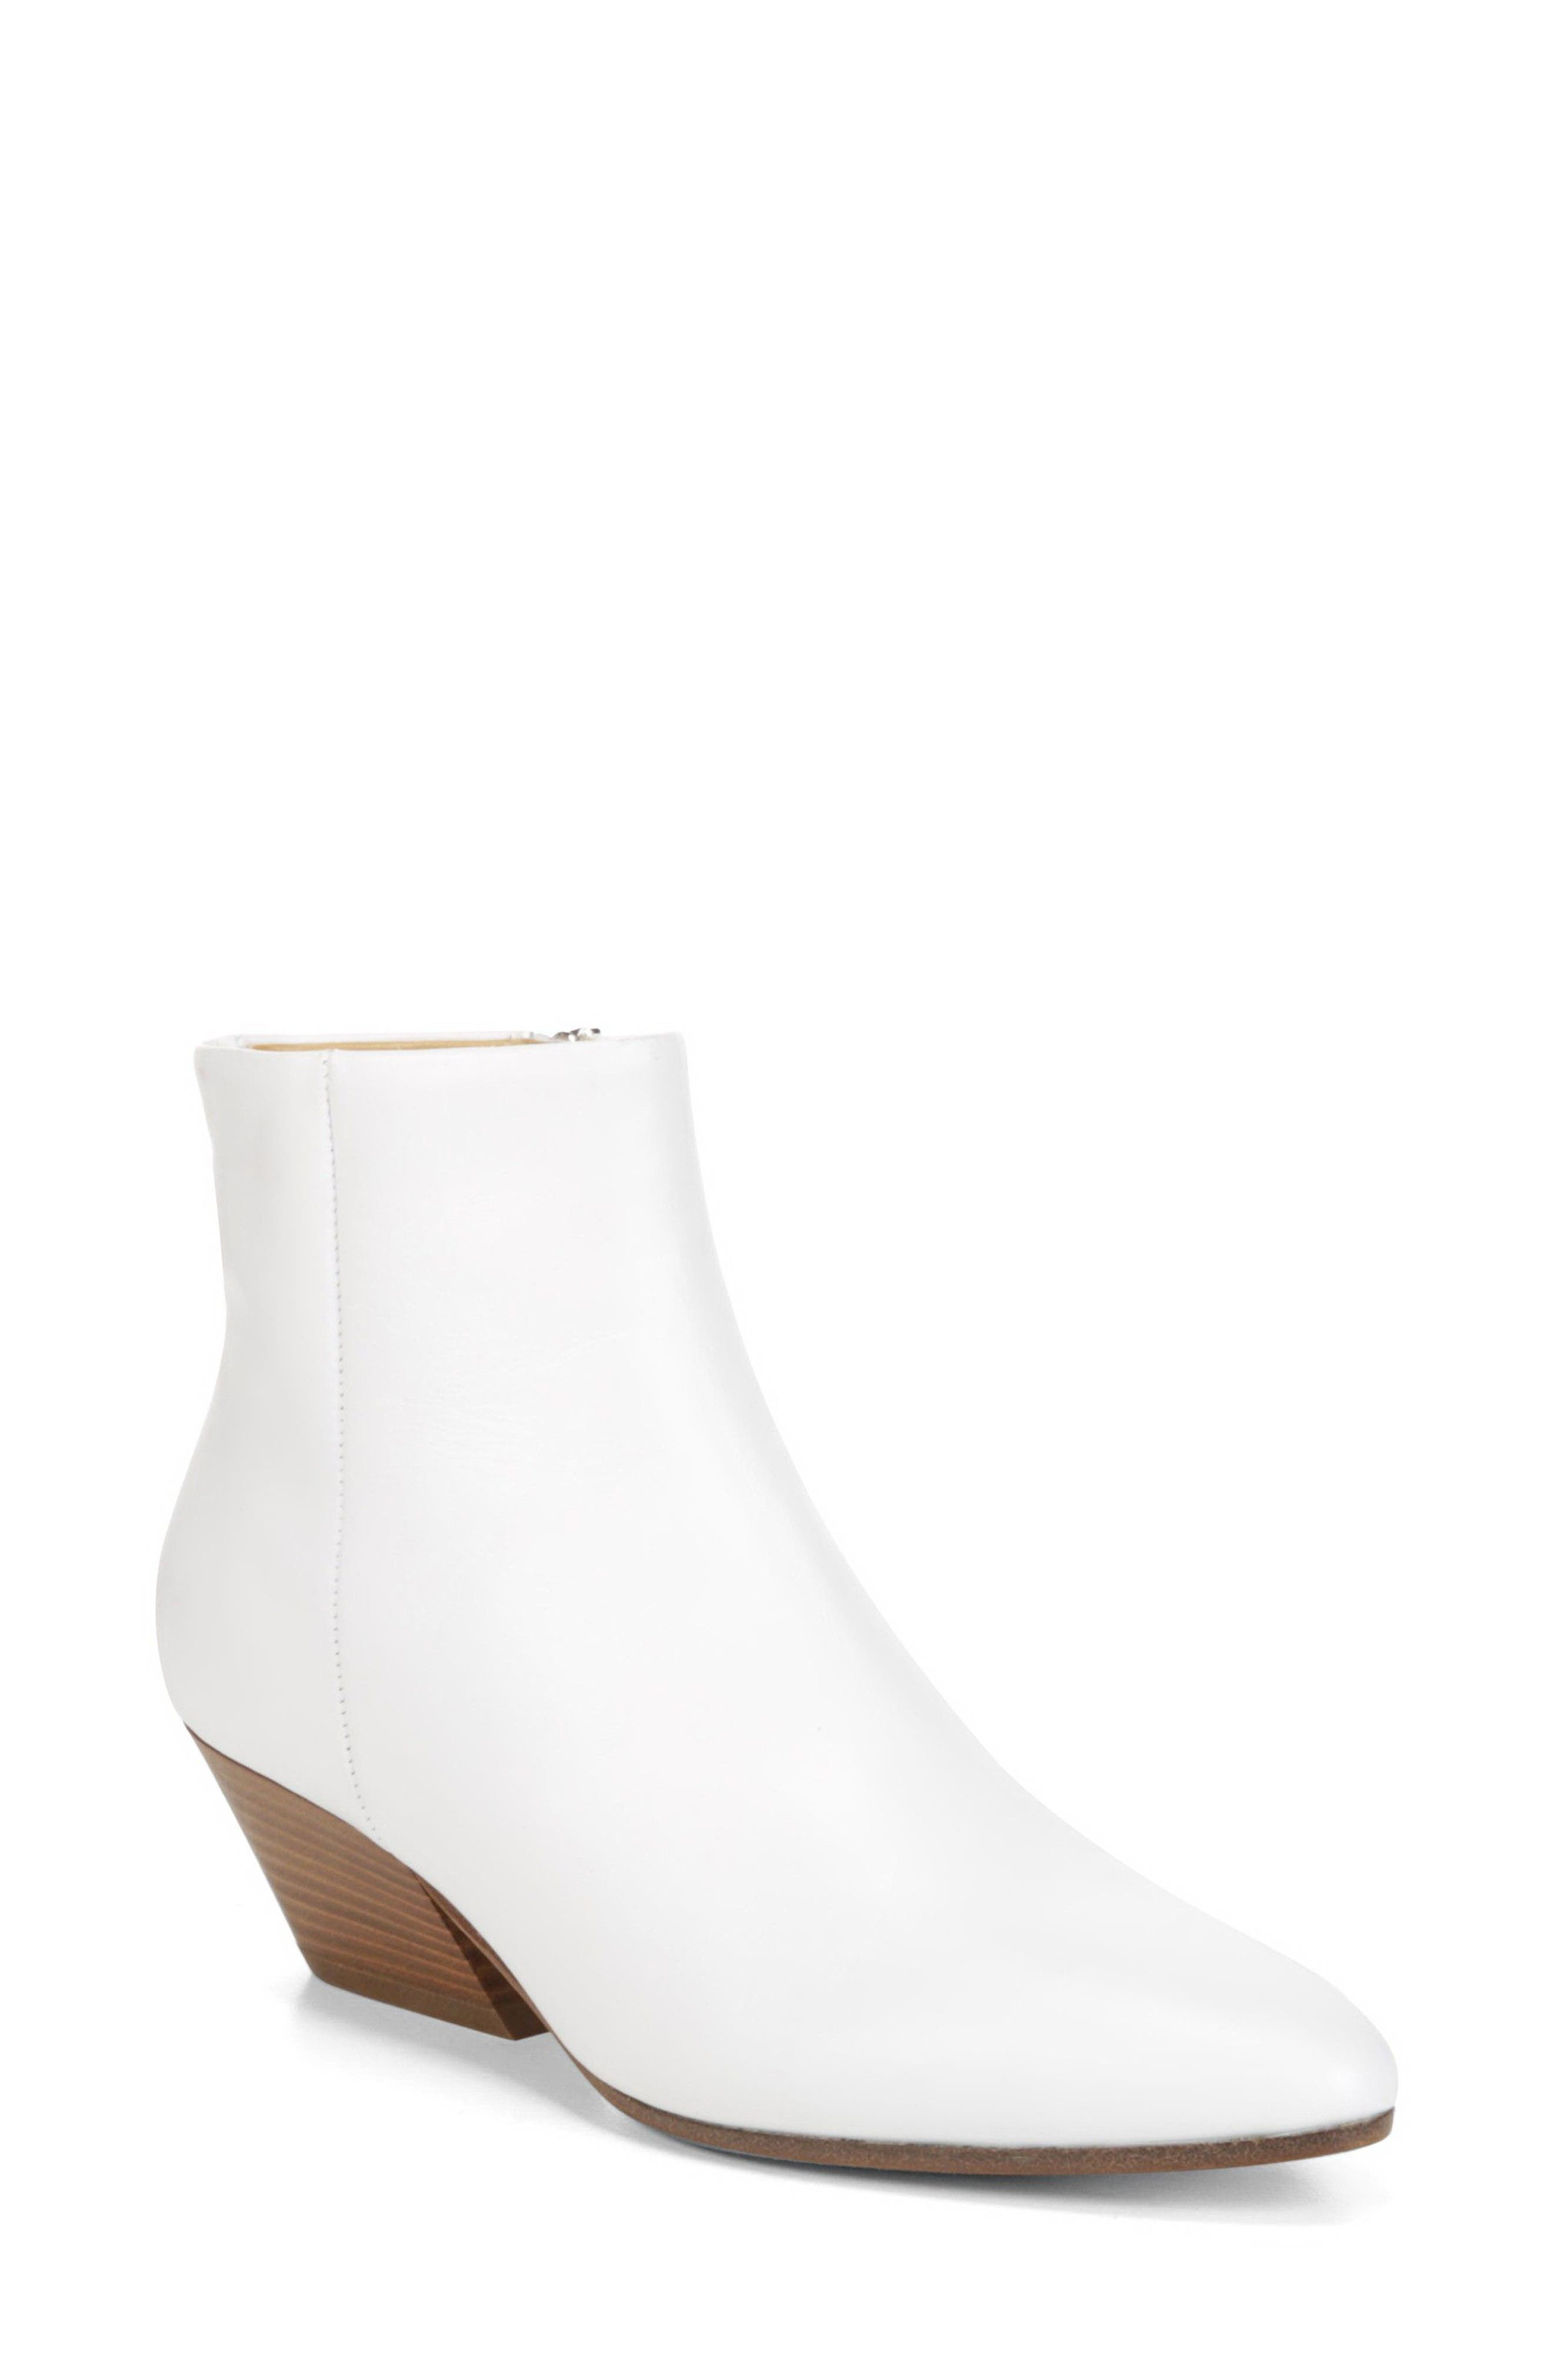 Vaughn Bootie,                             Main thumbnail 1, color,                             Optic White Leather